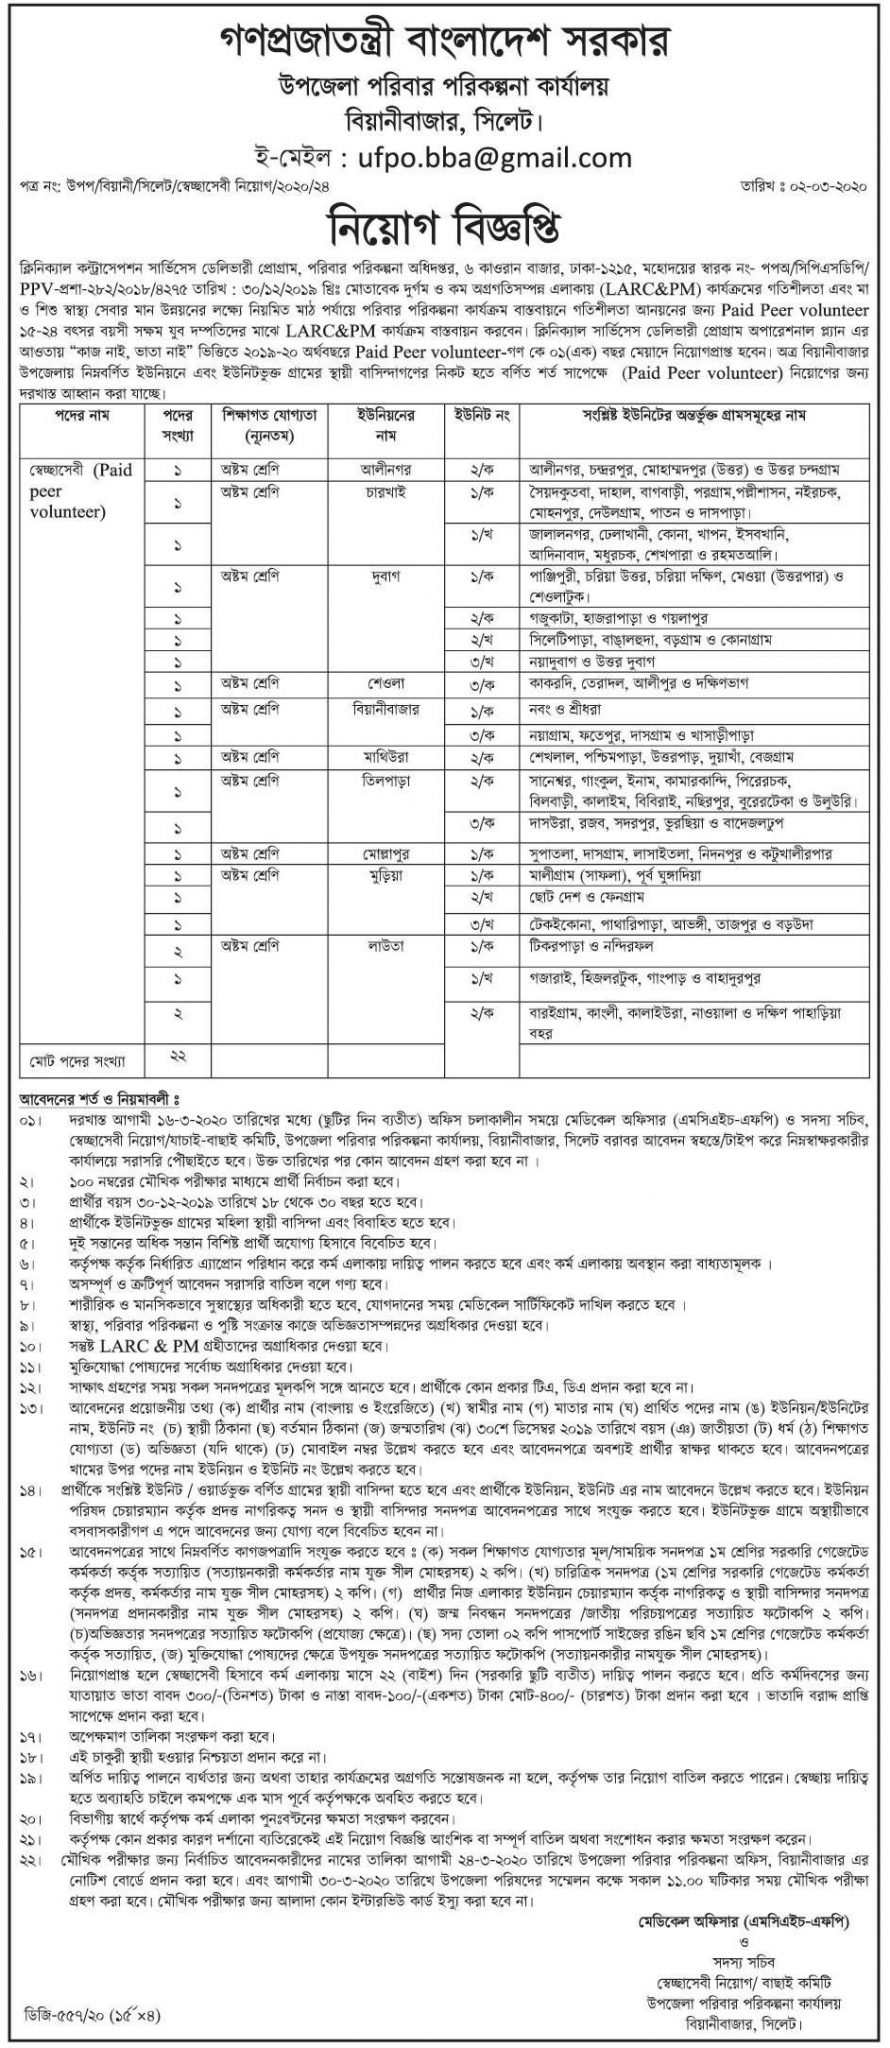 Upazila Family Planning Office Job Circular 2020